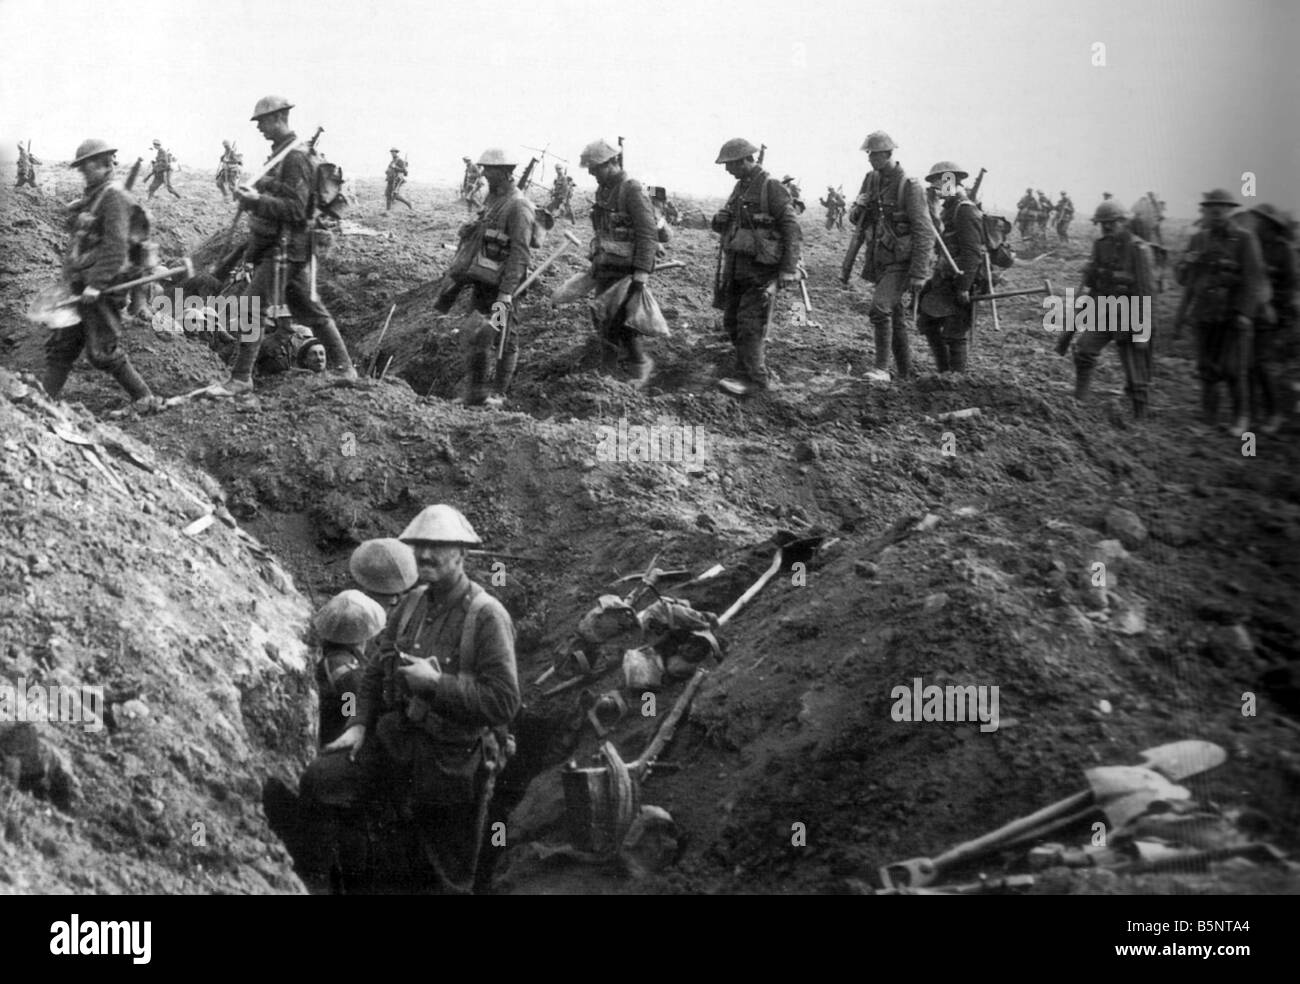 Sol Rs In Trenches During World War 1 Stock Photo